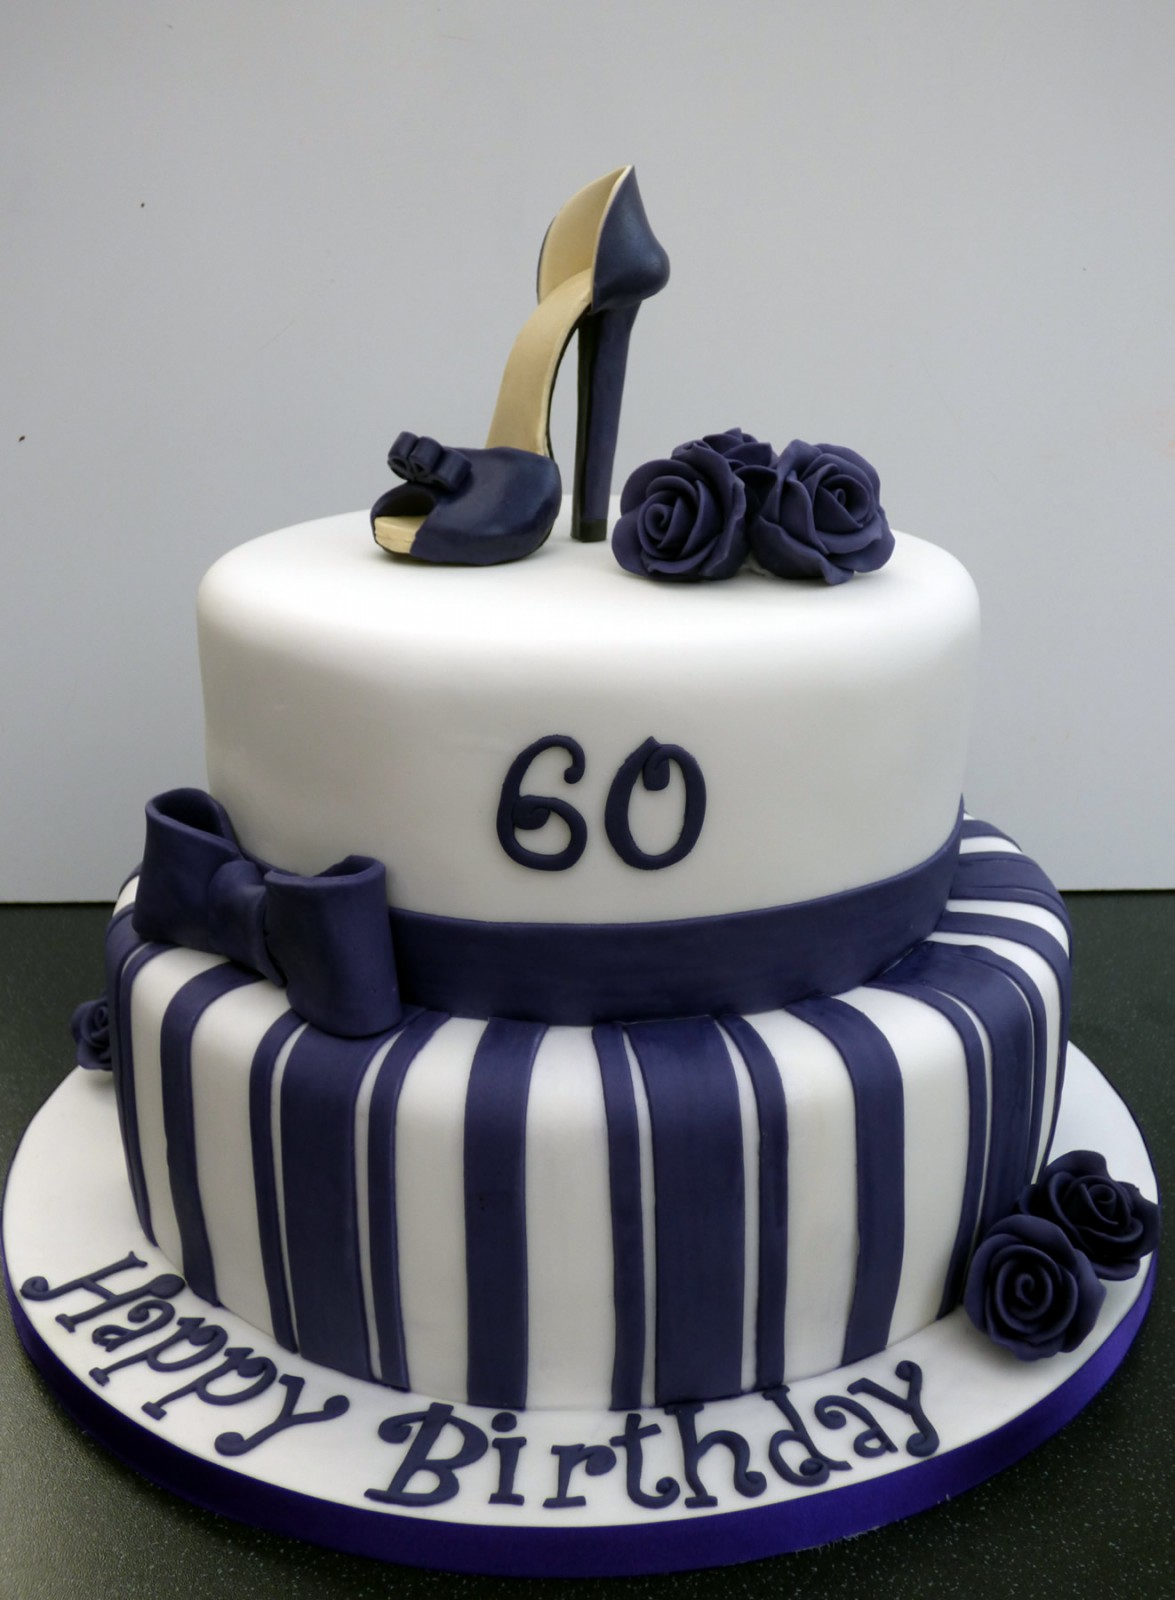 Glamorous 2 Tier 60th Birthday Cake With A Stiletto Shoe